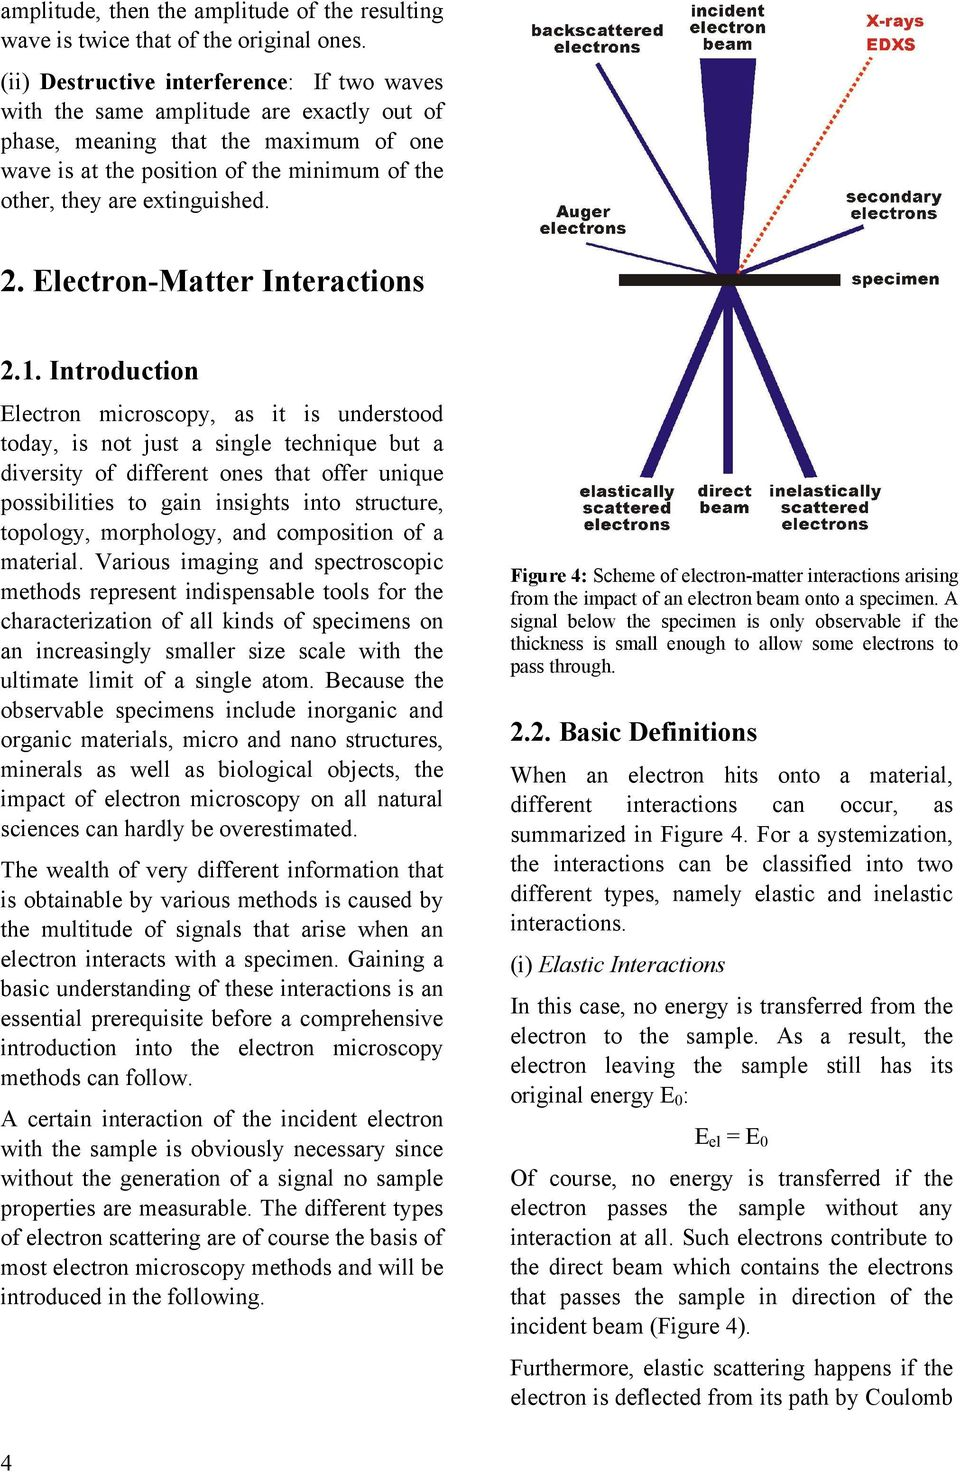 extinguished. 2. Electron-Matter Interactions 2.1.